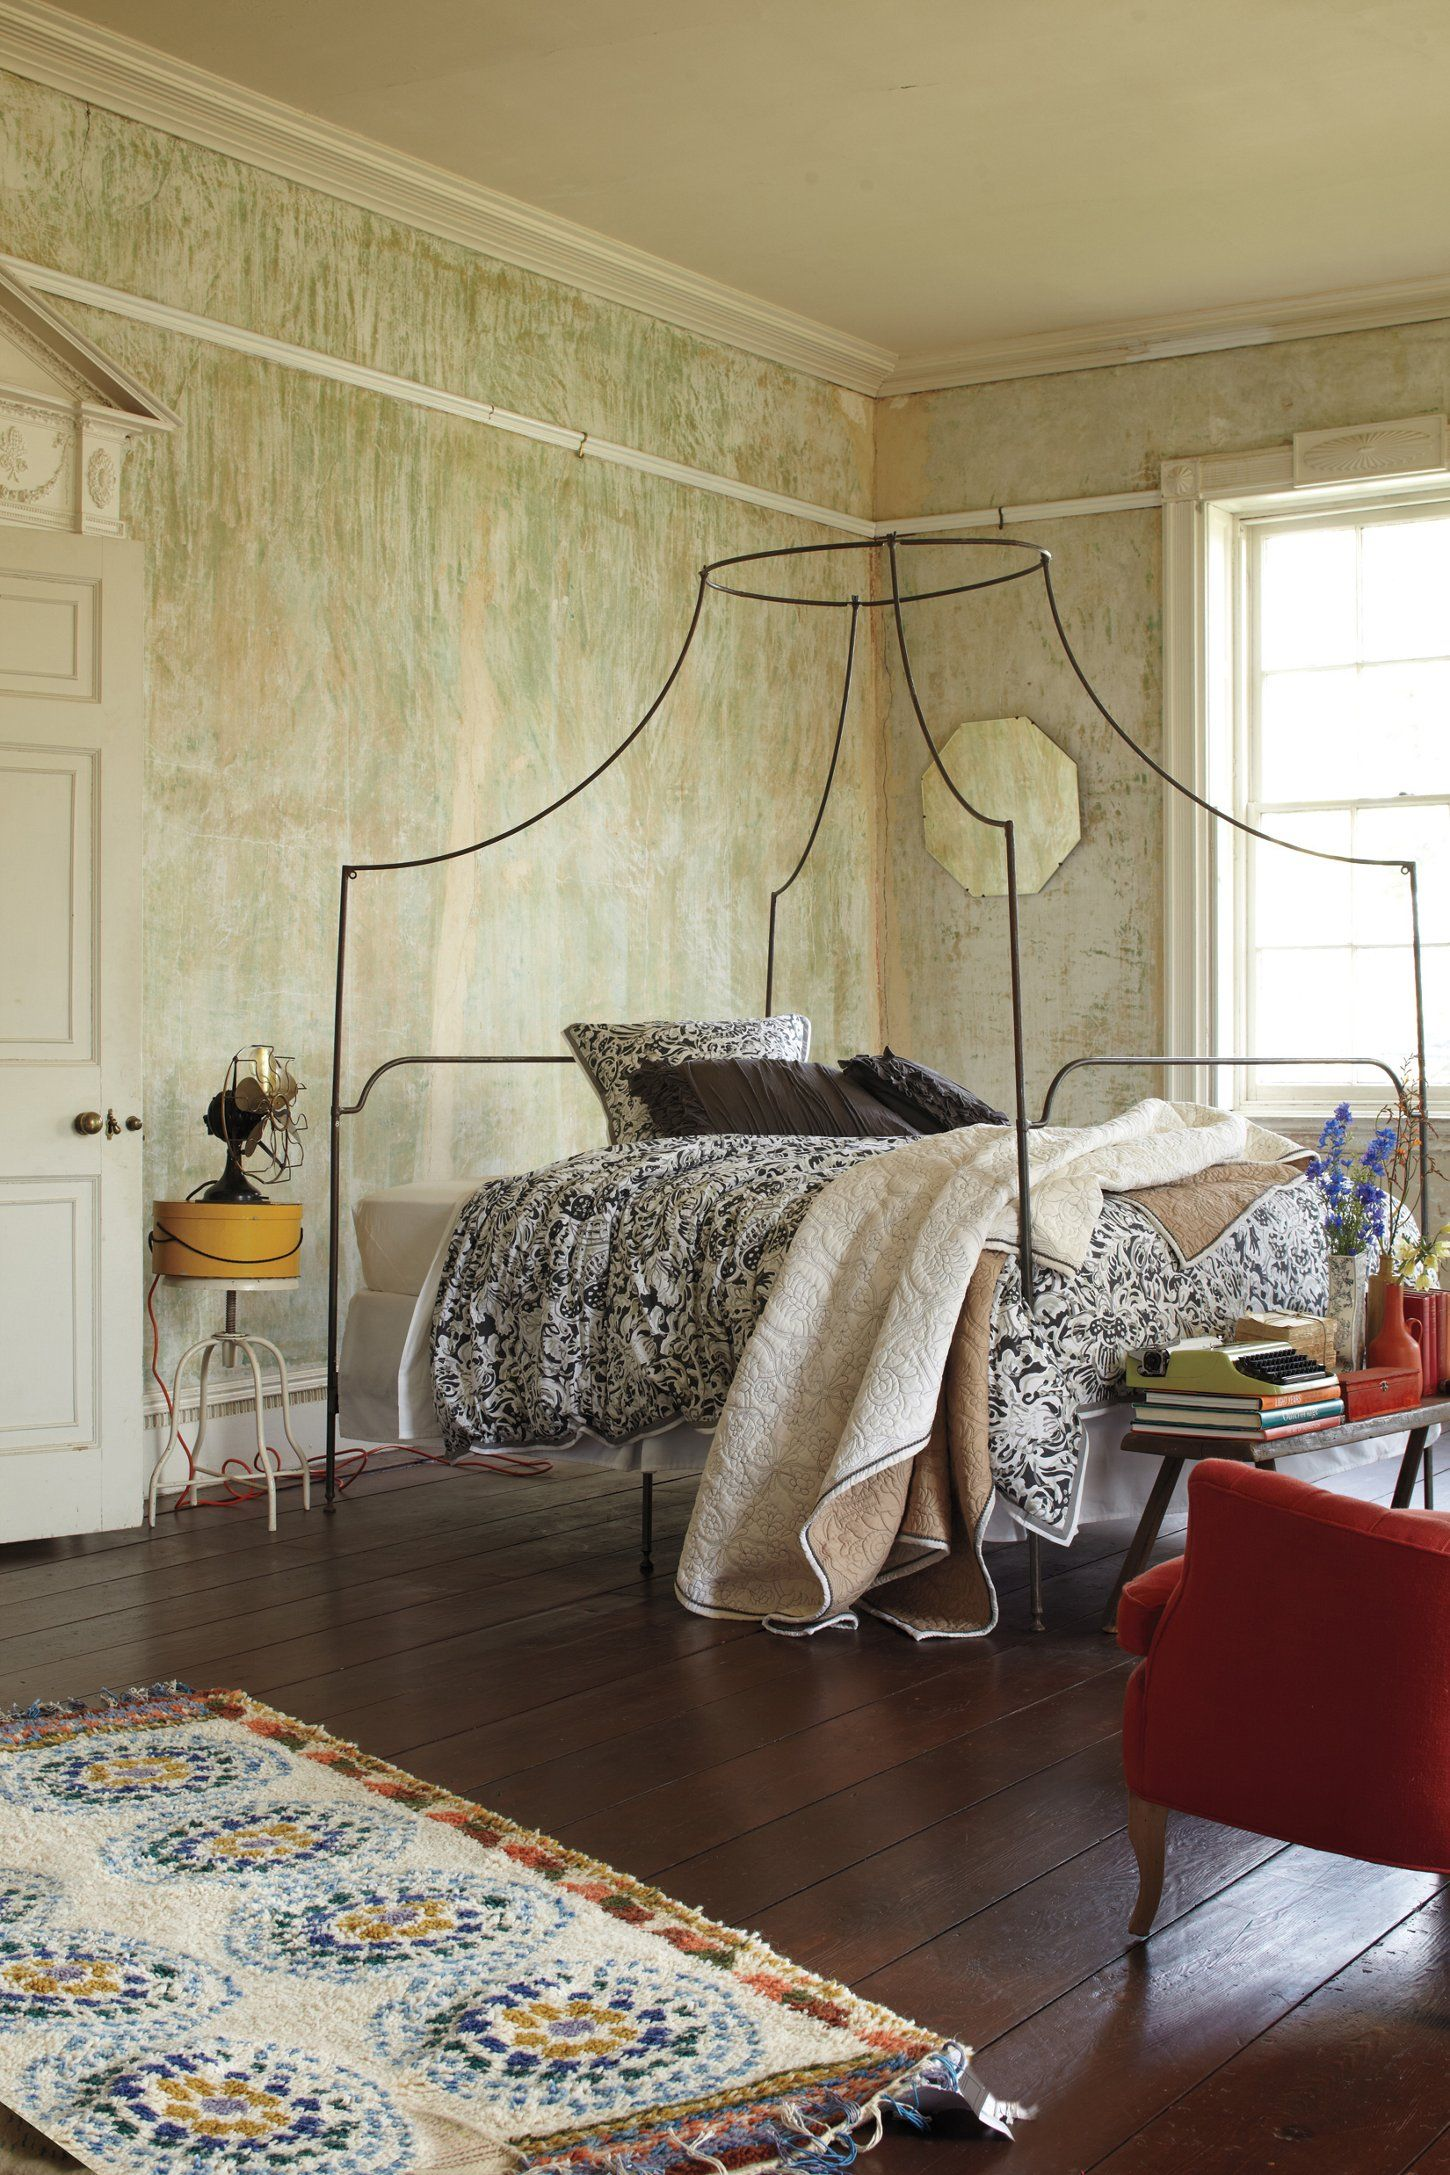 Hanging bed anthropologie - Campaign Canopy Bed